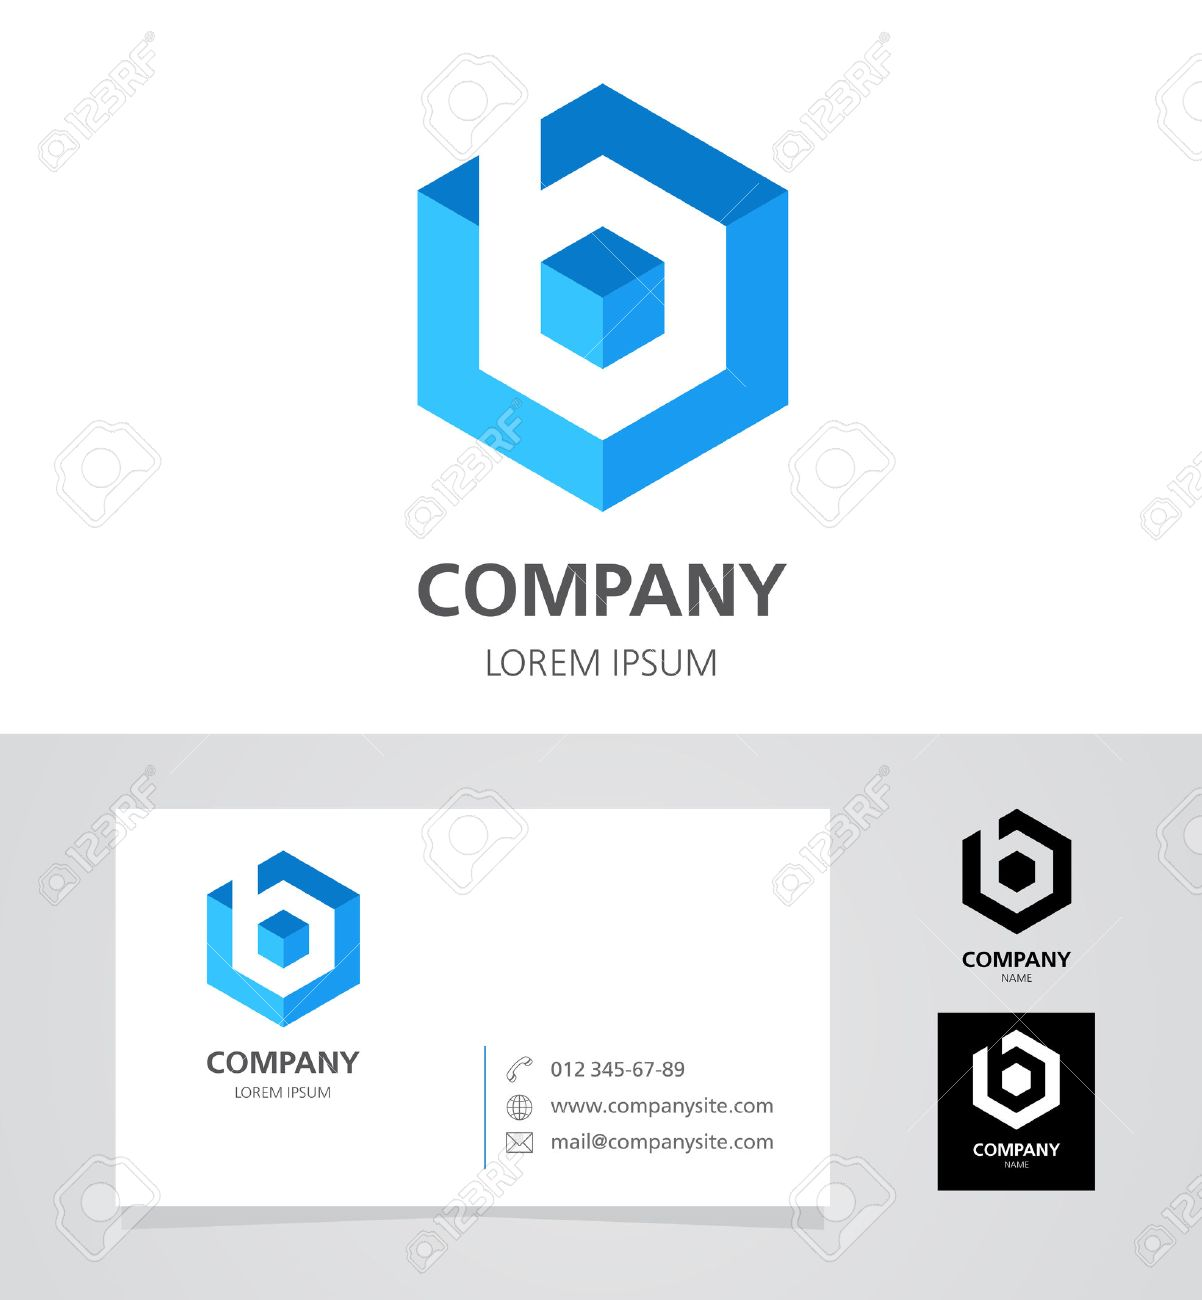 Letter b logo design element with business card illustration letter b logo design element with business card illustration stock vector 61826094 magicingreecefo Image collections